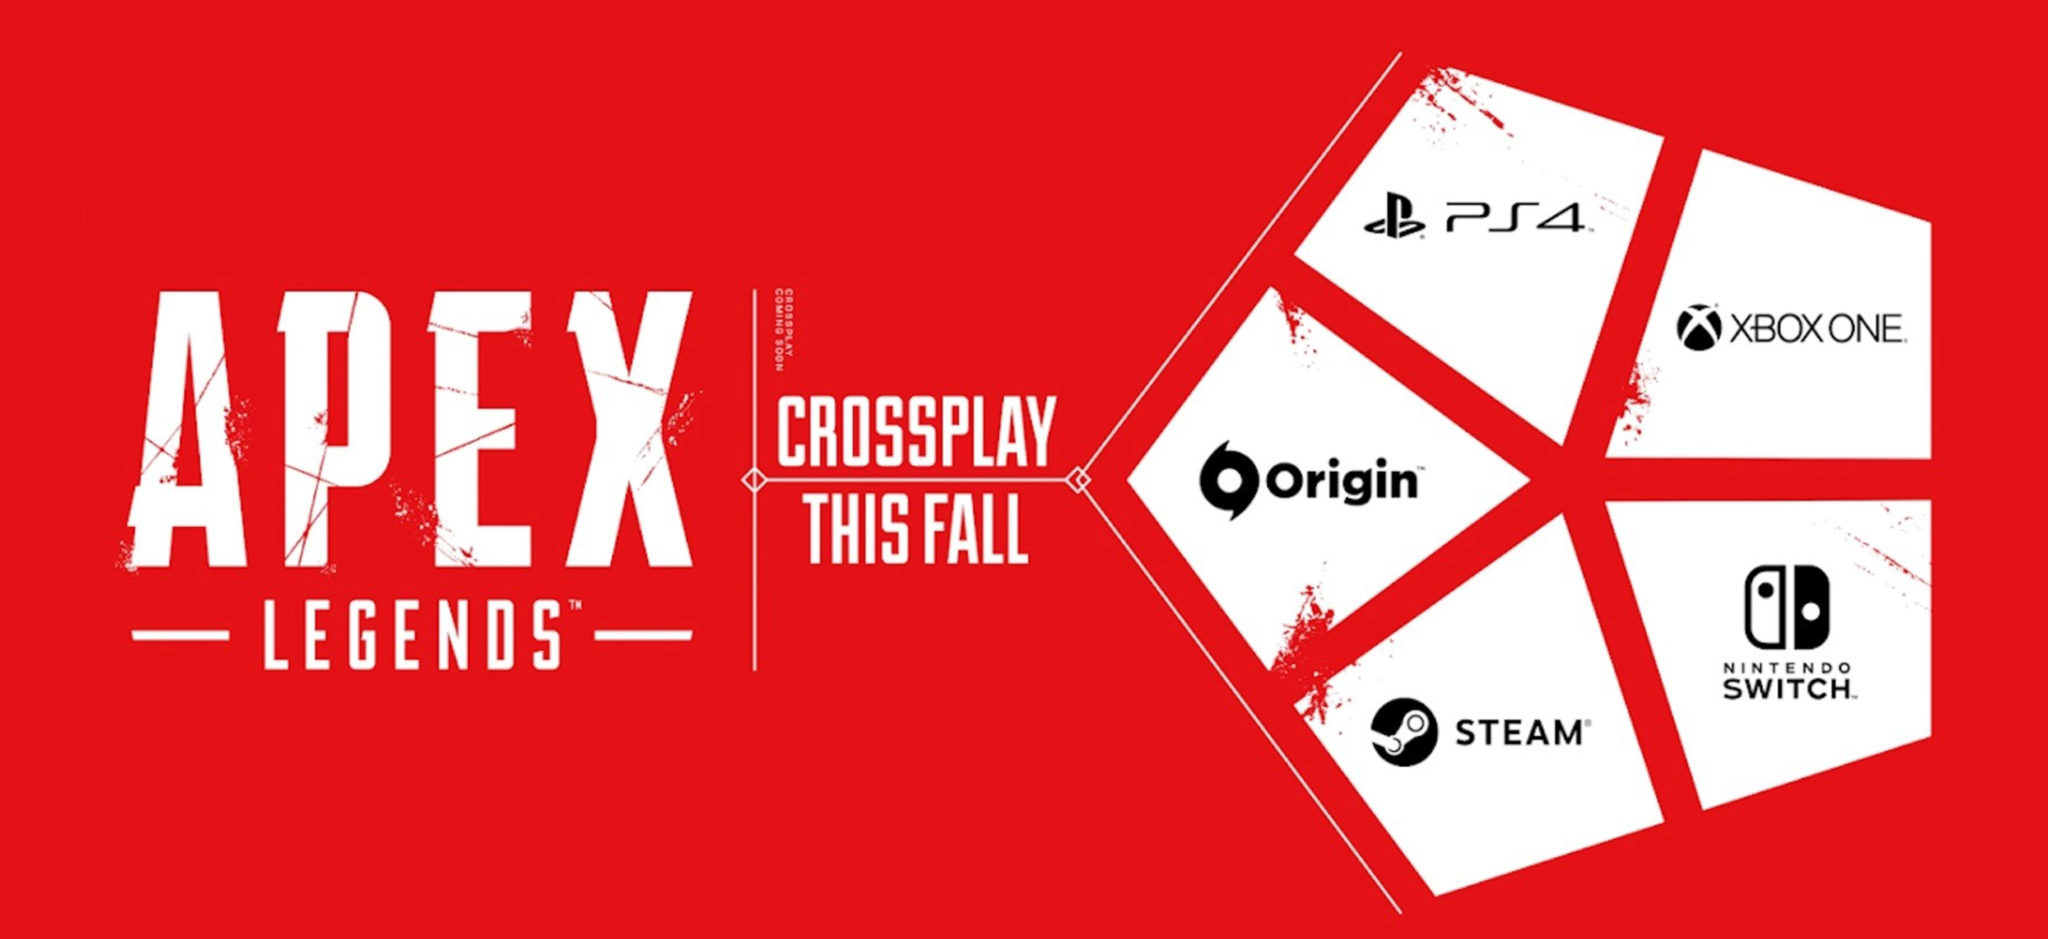 Apex Legends crossplay with all platforms listed